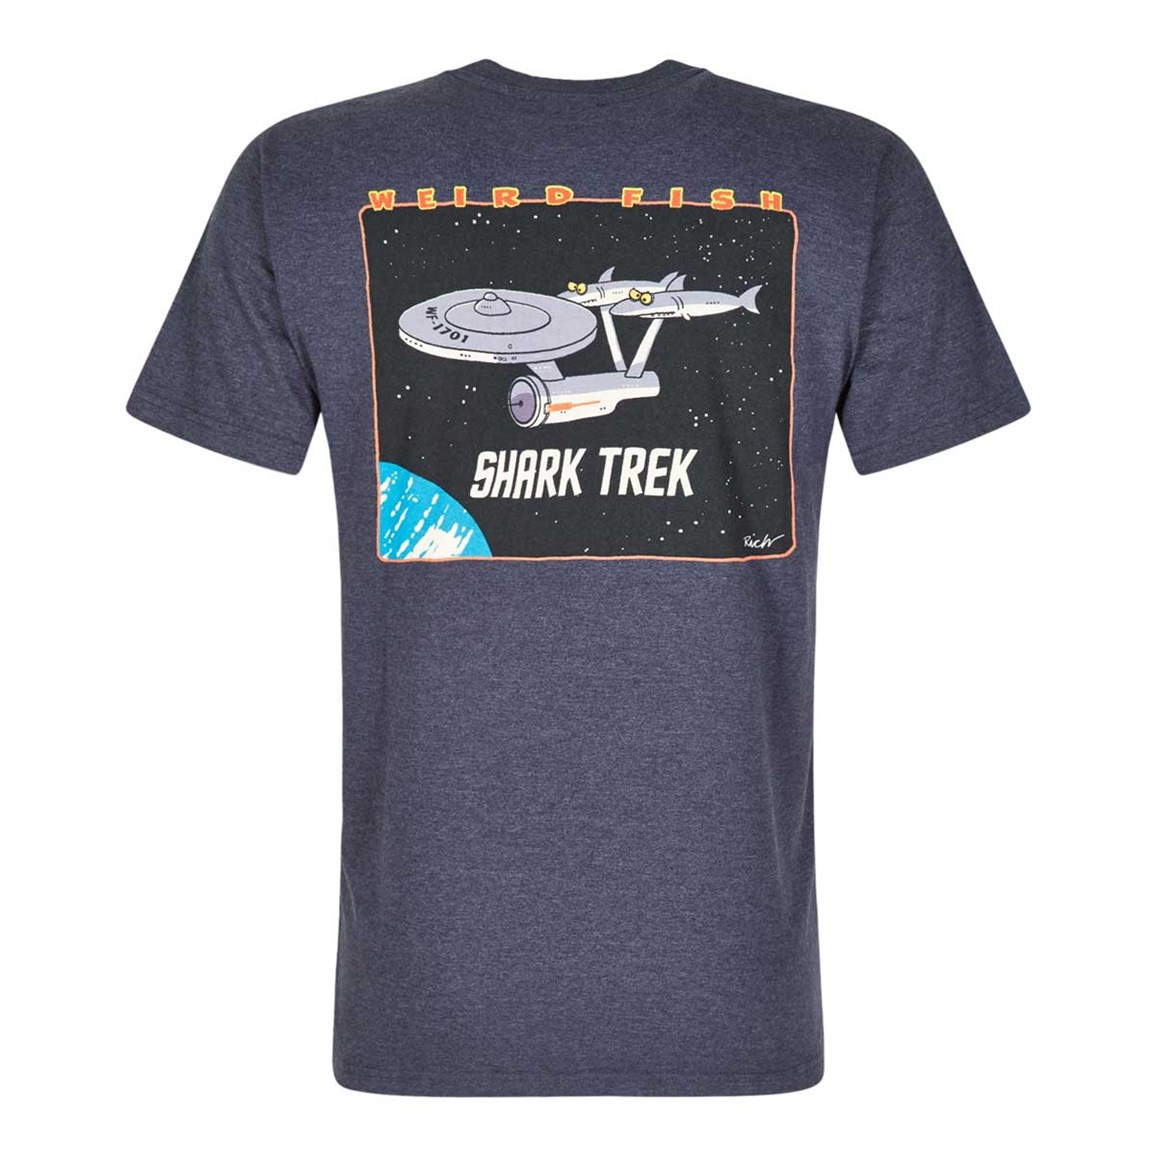 Weird Fish Shark Trek Printed Artist T-Shirt Navy